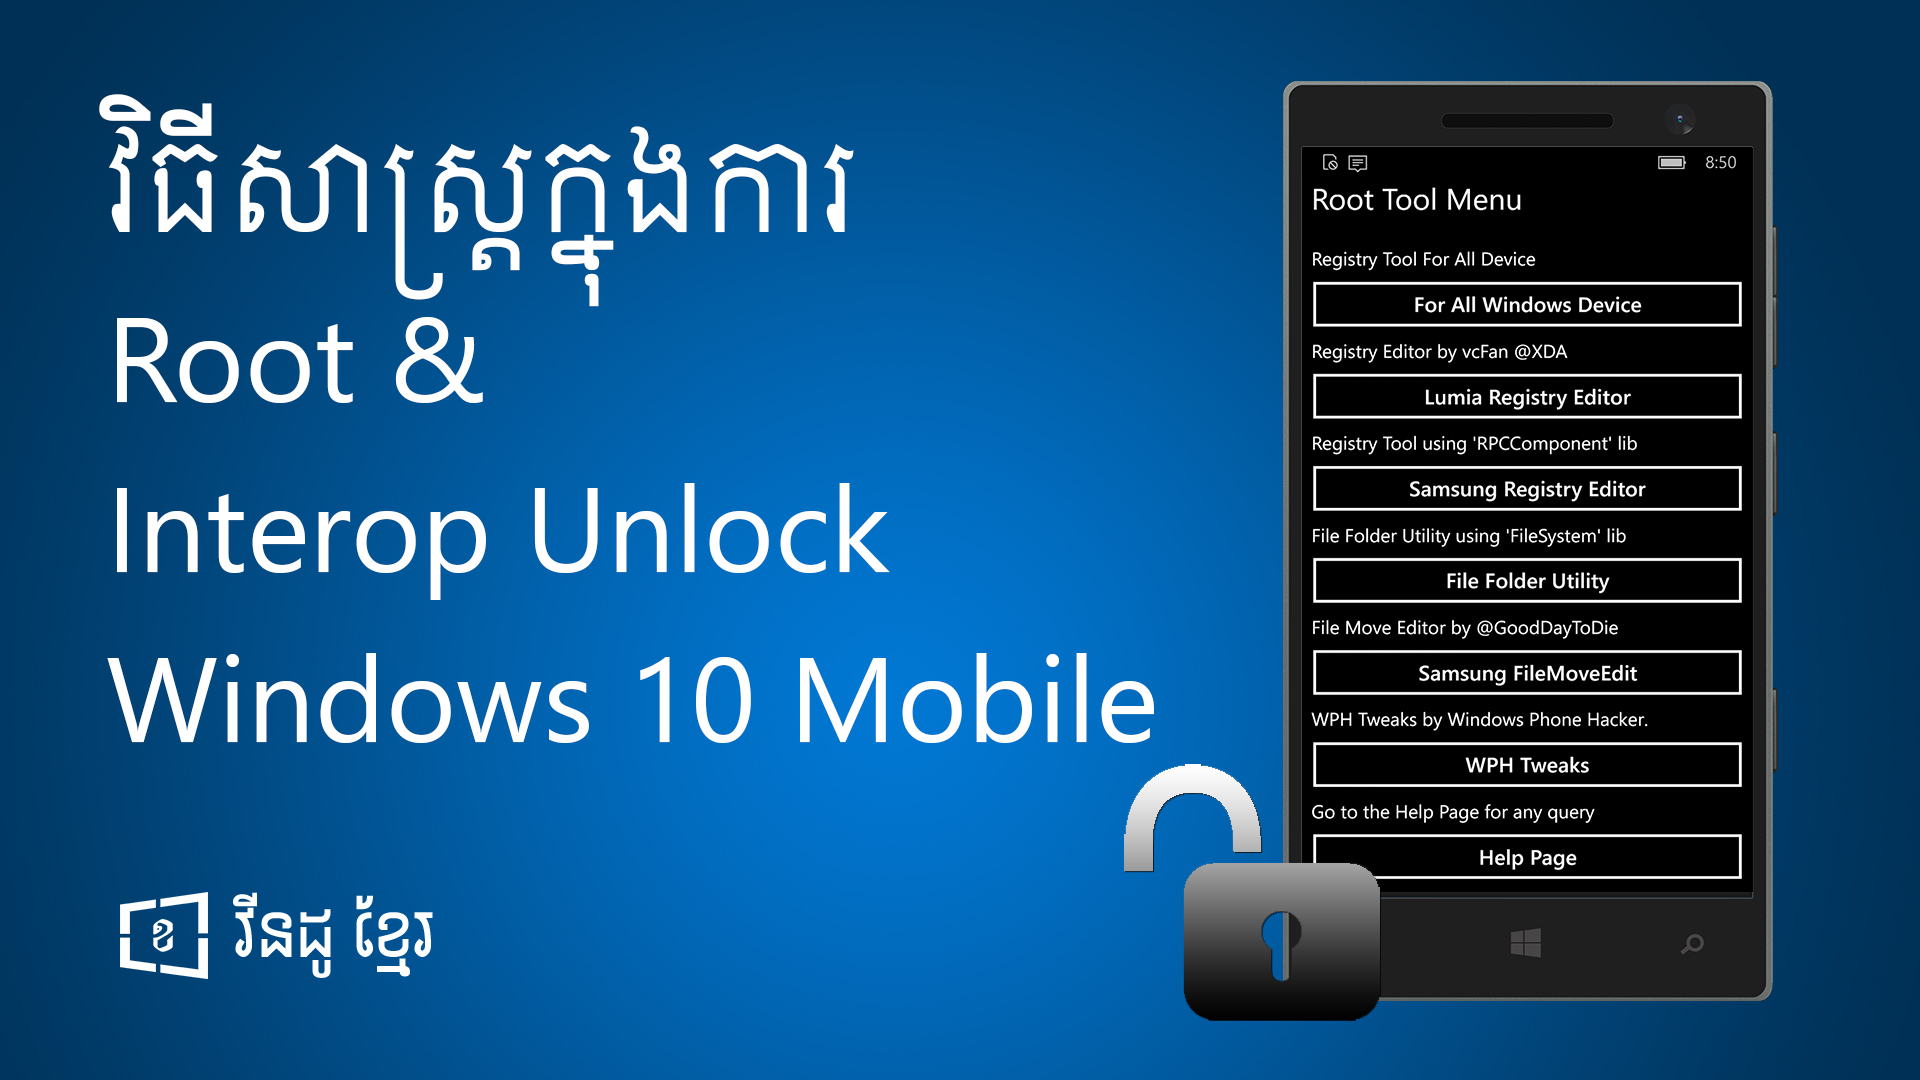 How to Root & Interop Unlock the Windows 10 Mobile devices